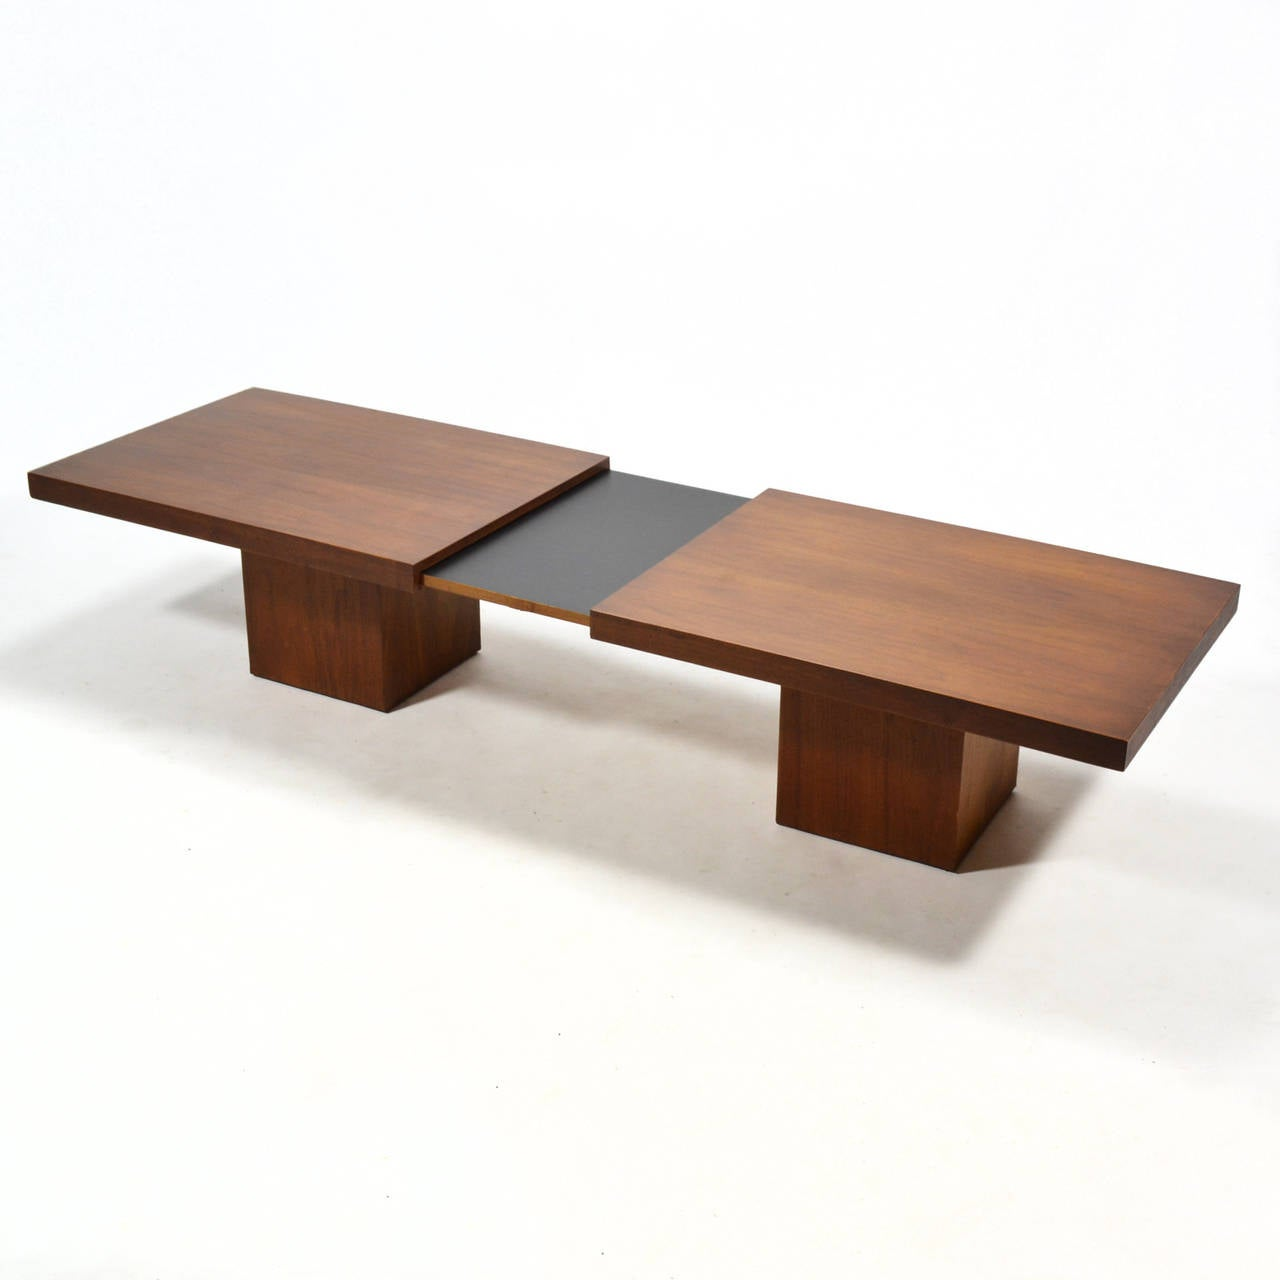 John Keal Expanding Coffee Table By Brown Saltman For Sale At 1stdibs